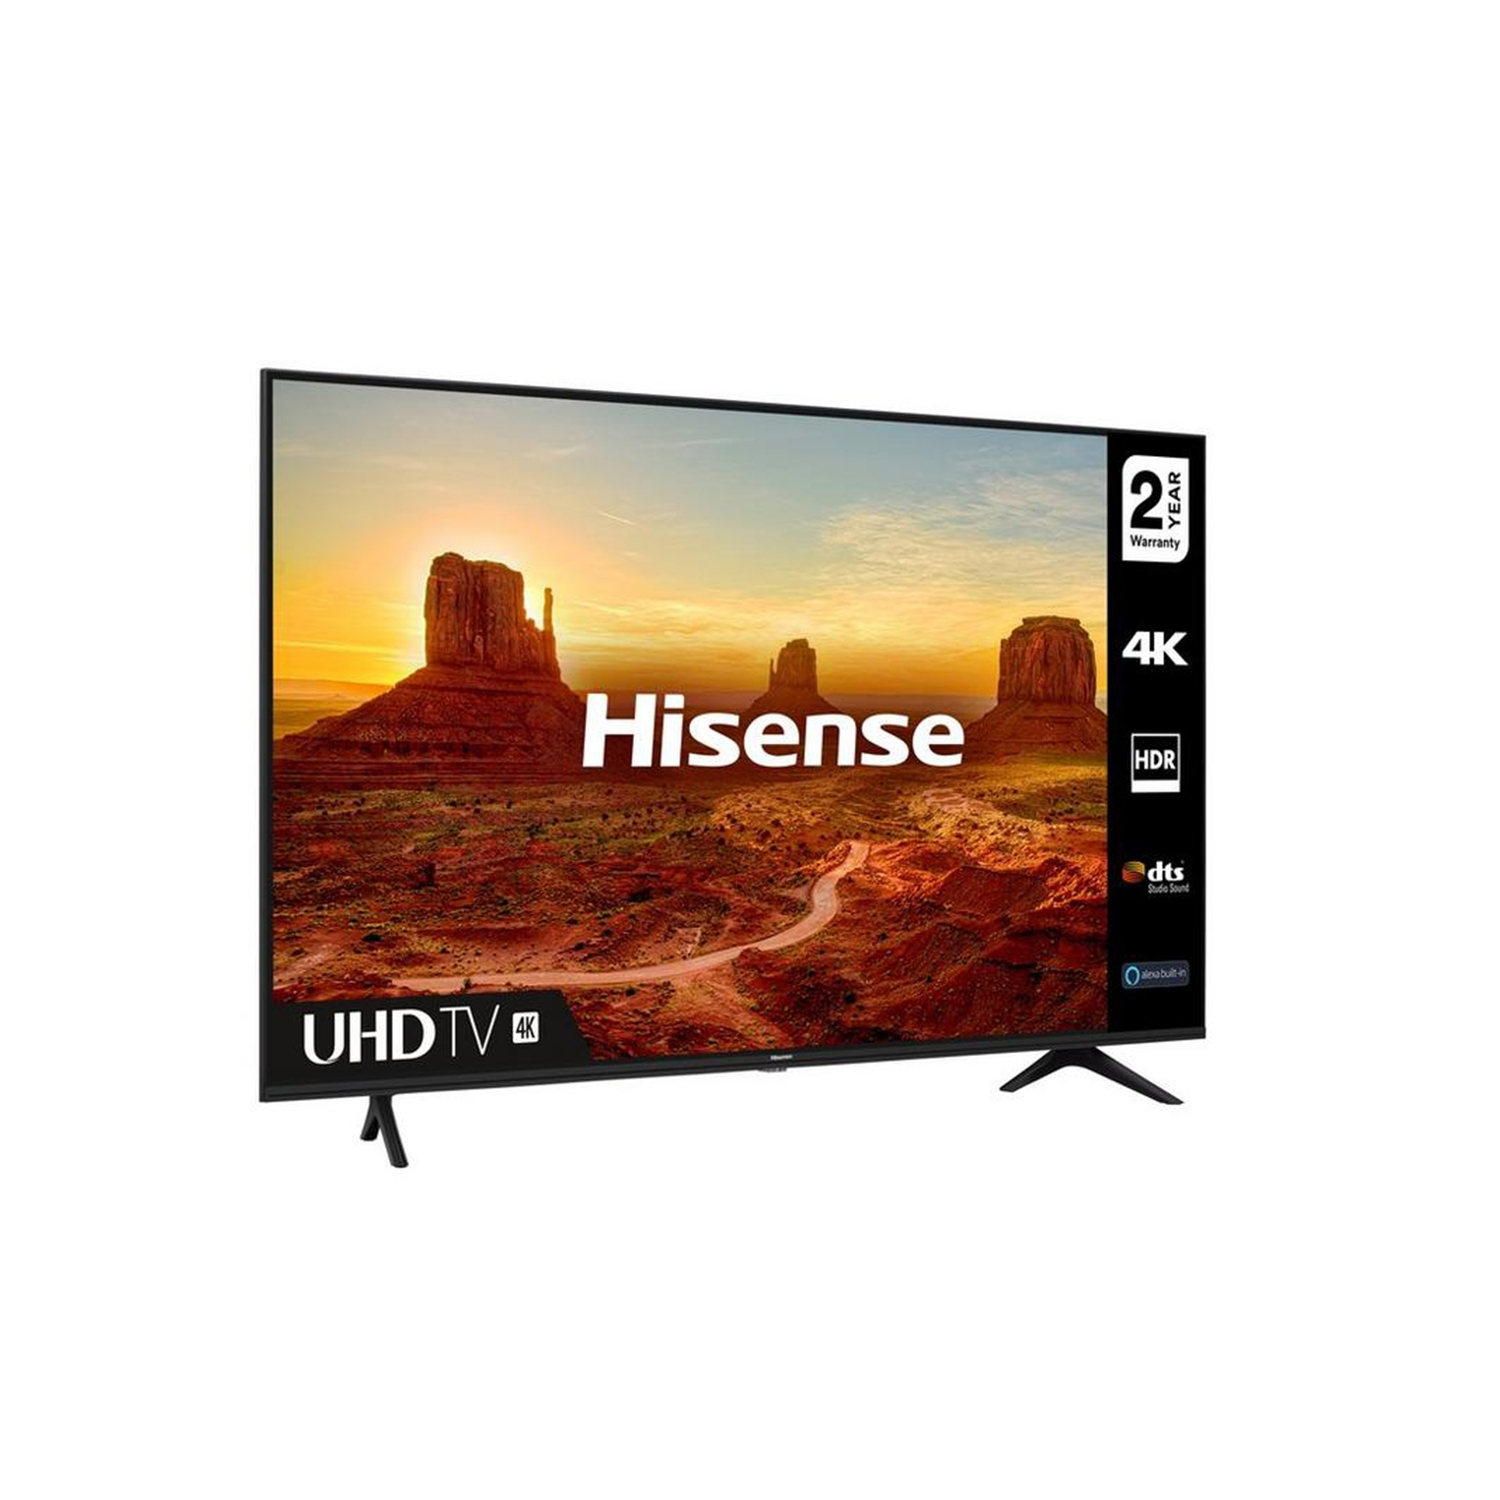 "Hisense 50"" 4K UHD Smart TV - A+ Energy Rated - 1"